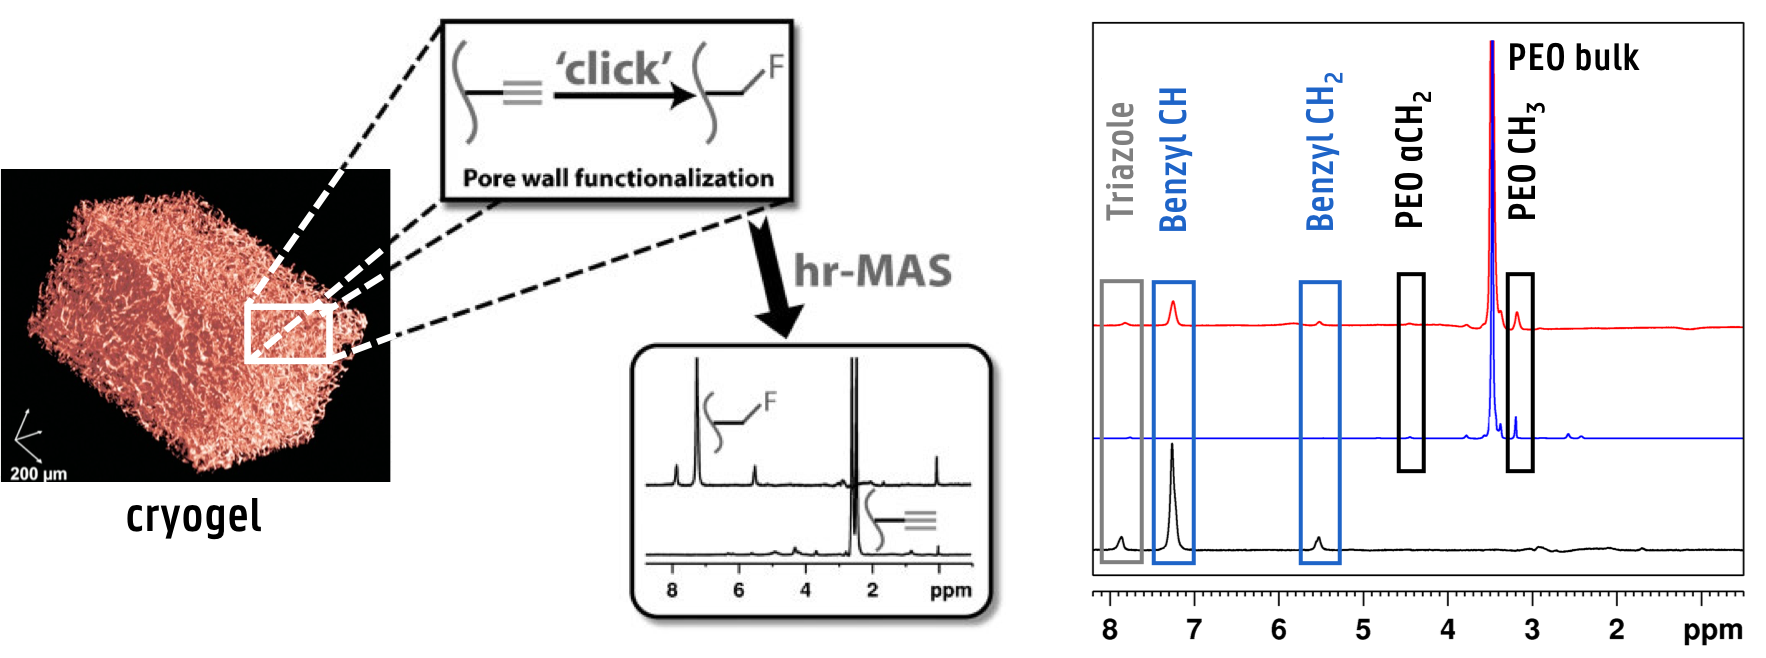 Cryogel functionalization studied by 1D 1H hr-MAS NMR spectra